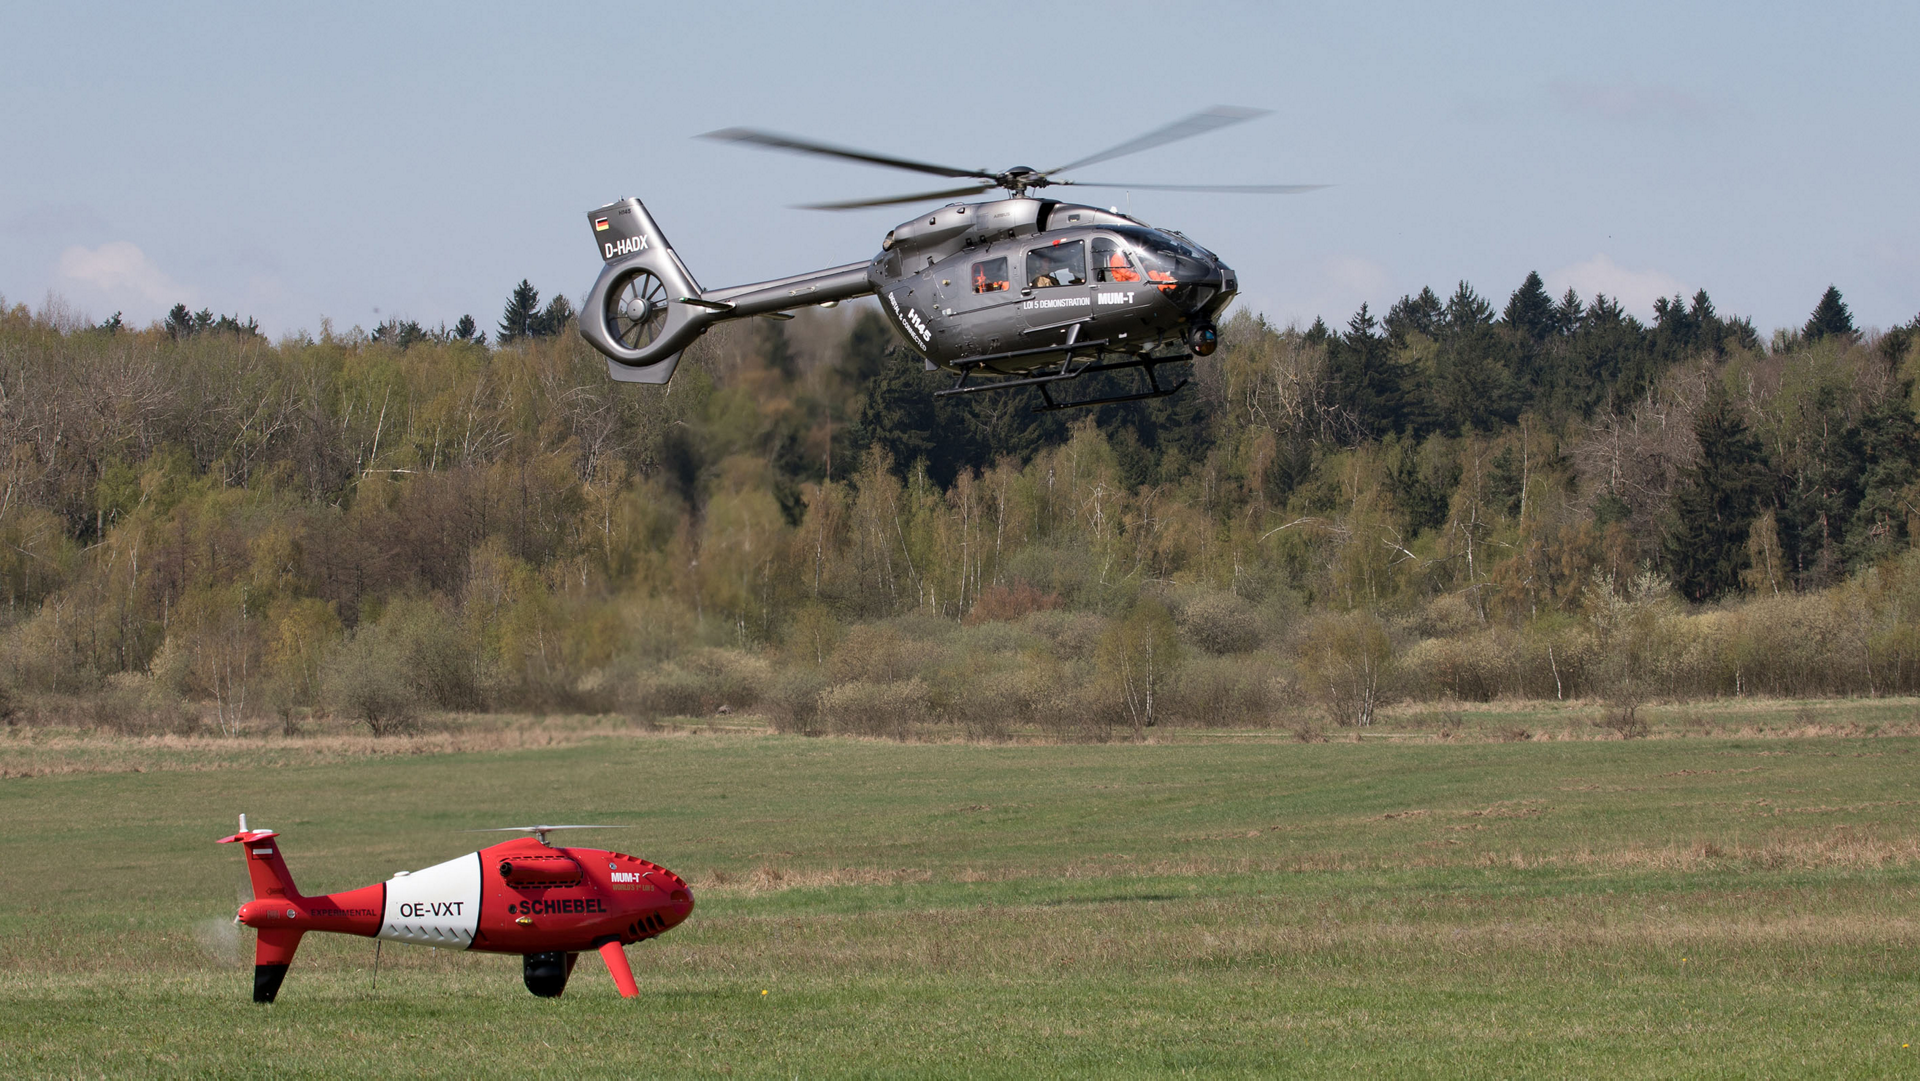 Airbus Helicopters and Schiebel have tested Manned Unmanned Teaming (MUM-T) capabilities between an H145 platform and a CAMCOPTER® S-100 Unmanned Air System (UAS), thus becoming the first European helicopter manufacturers to demonstrate this technology with the highest level of interoperability (LOI°5).